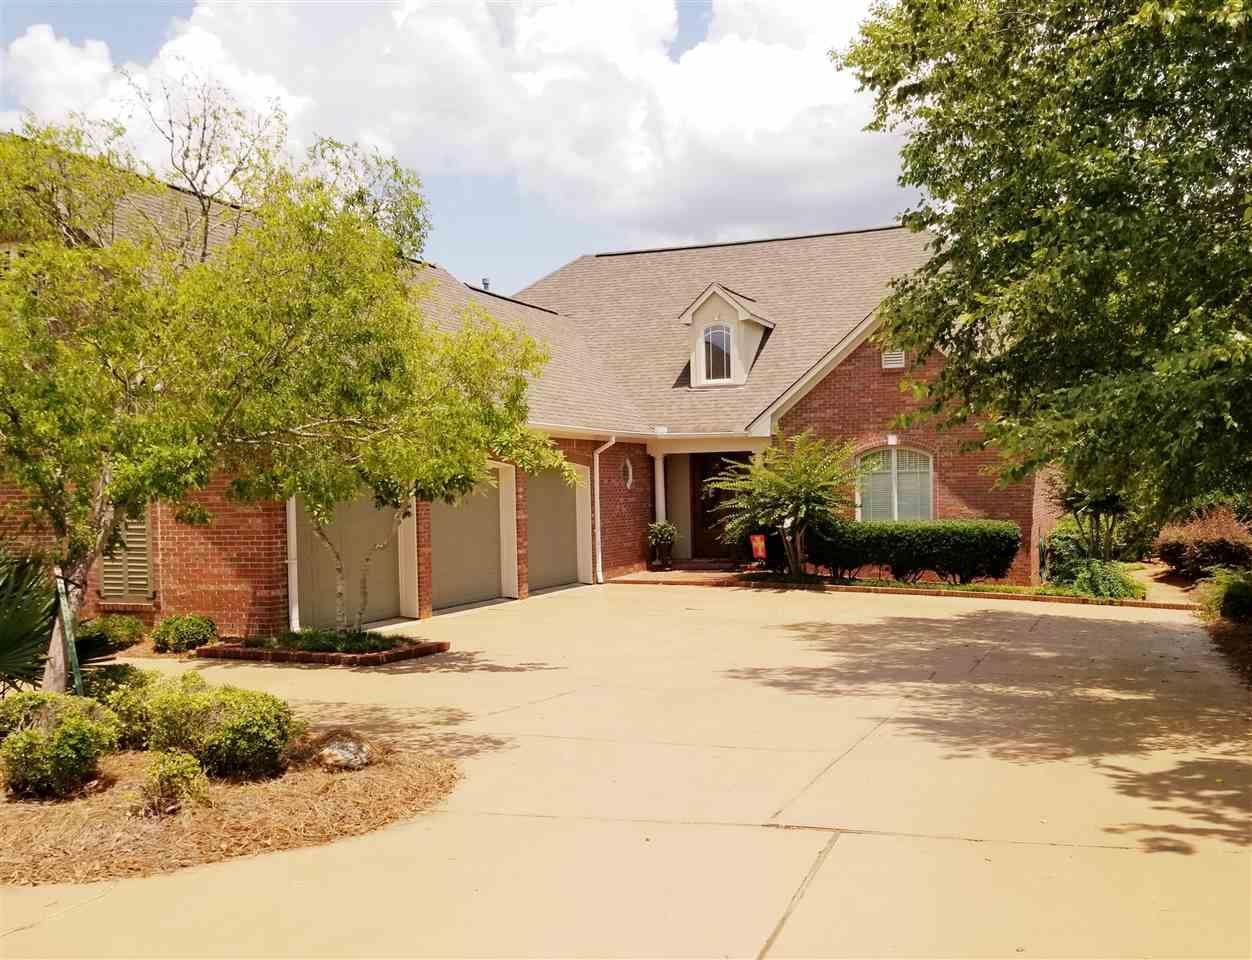 138 BELLE POINTE DR, Madison, MS 39110 - MLS#: 341696